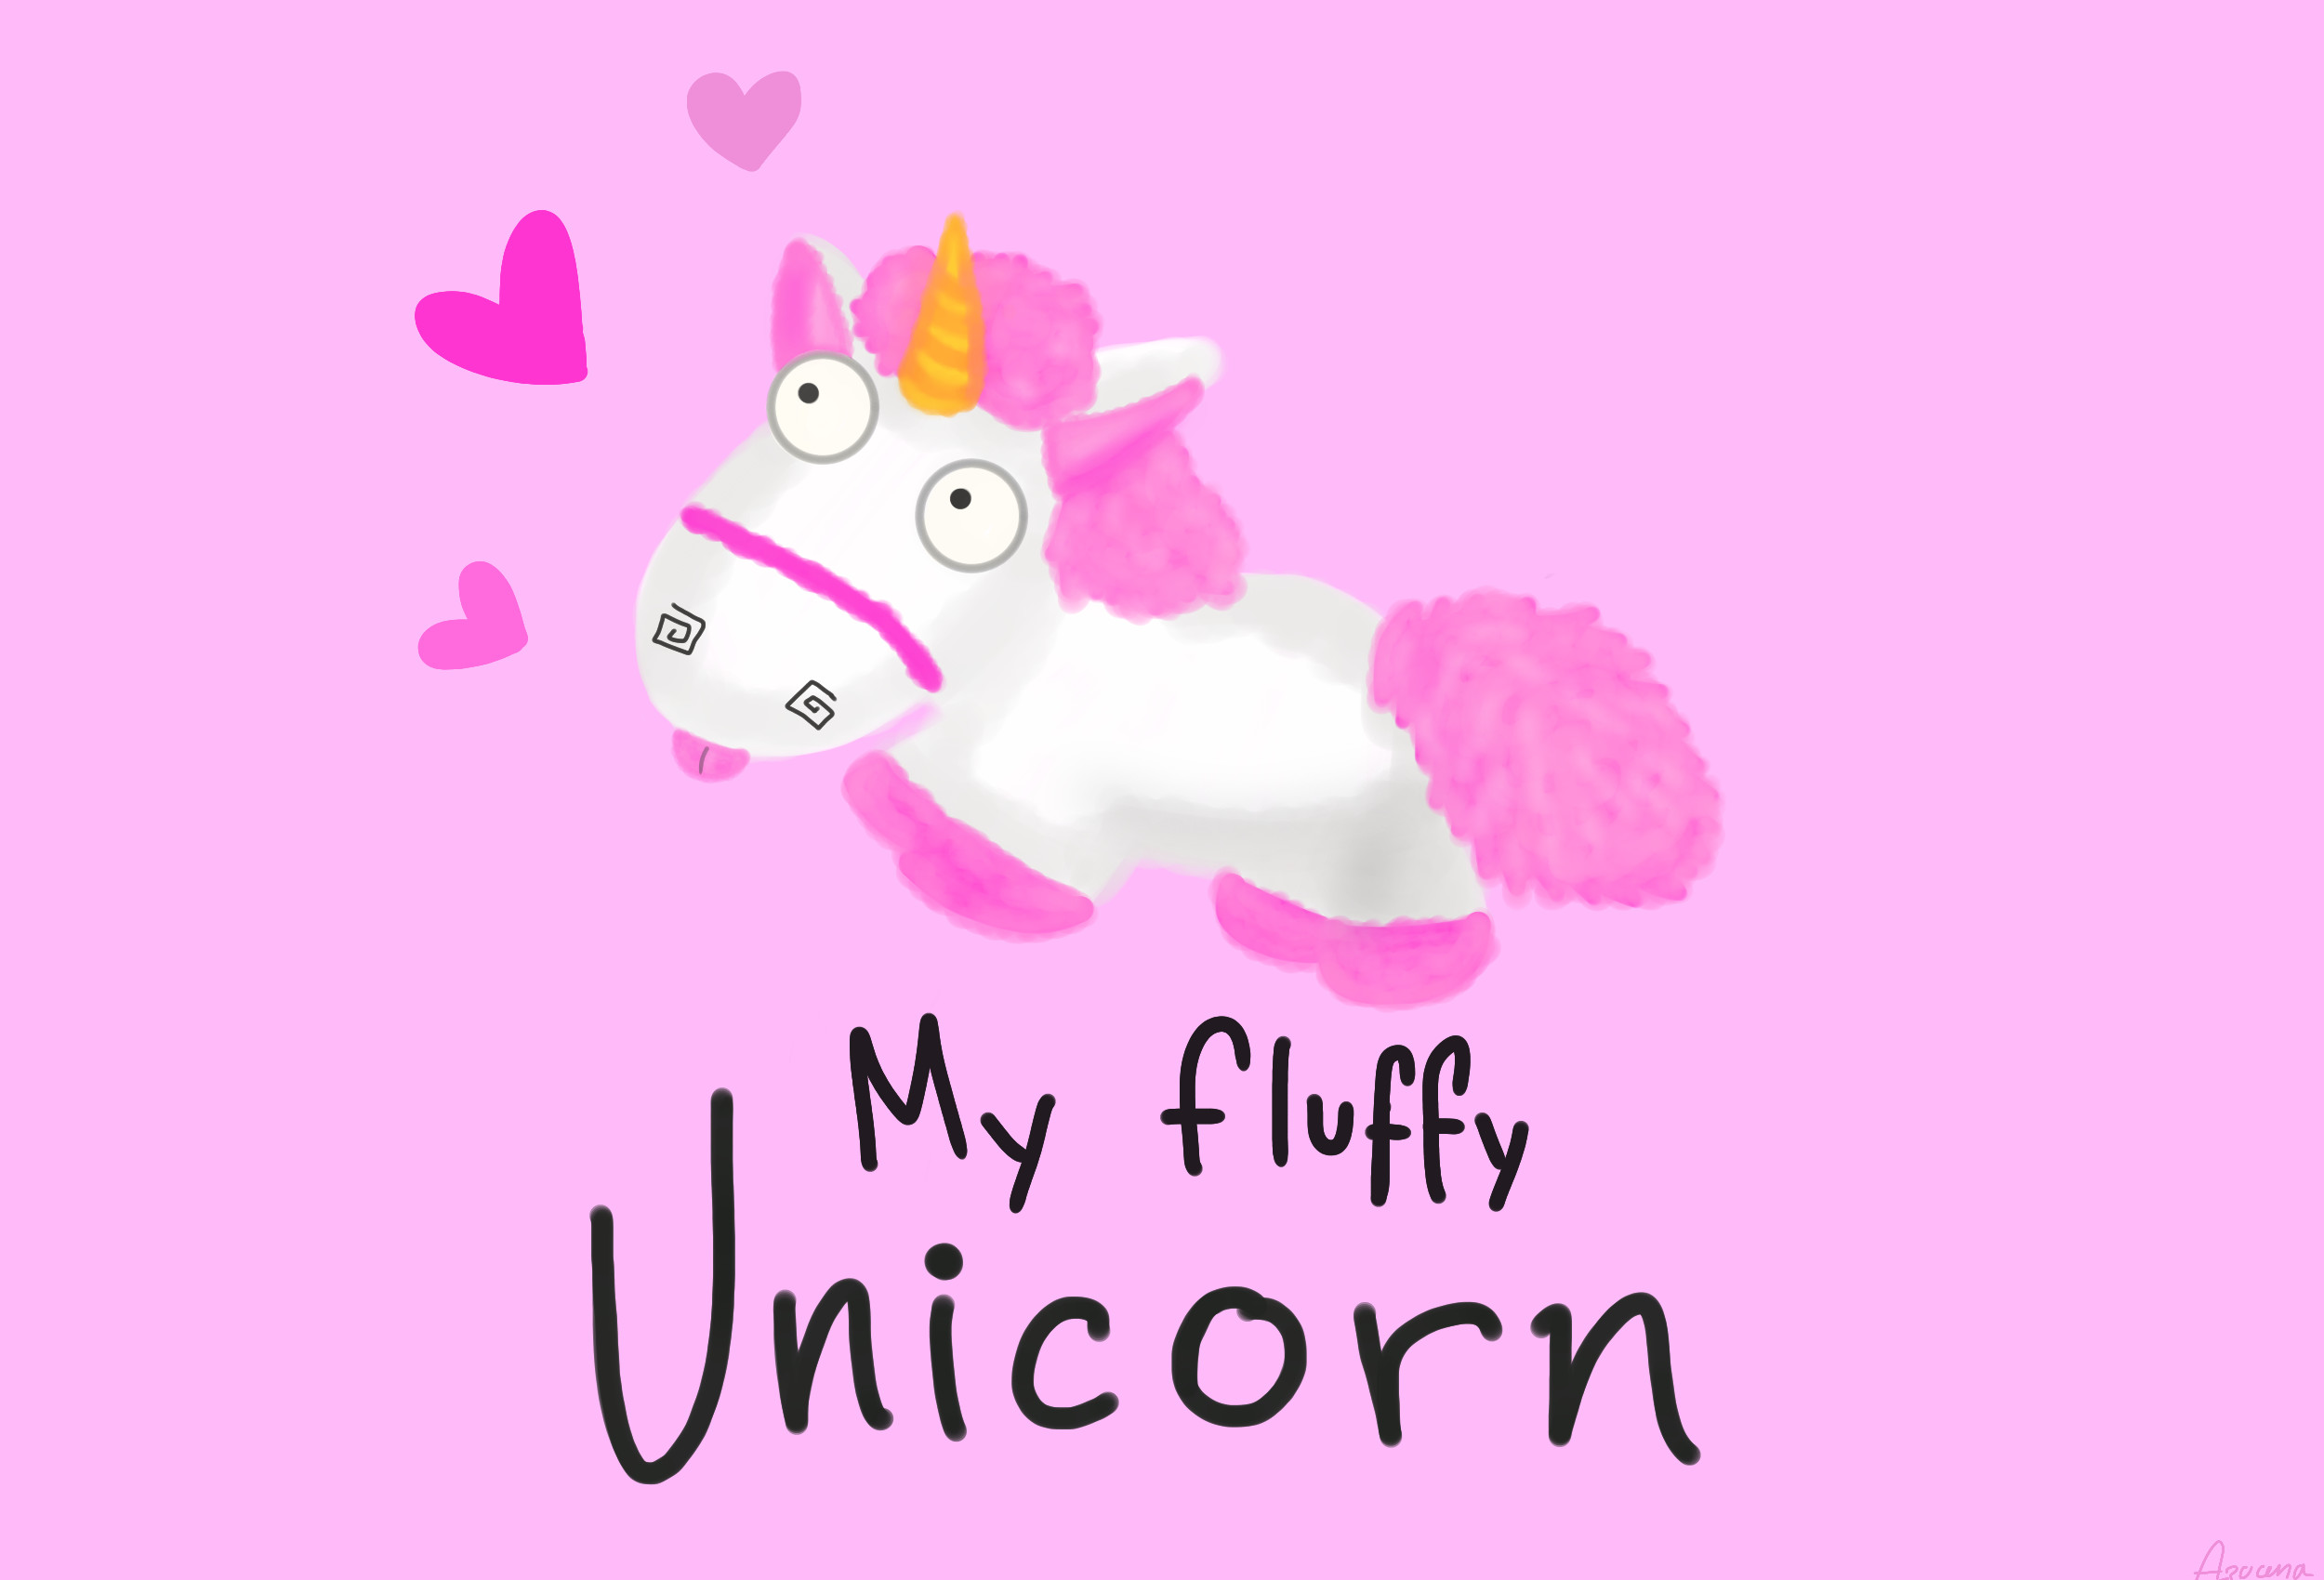 Love Quotes Wall Stickers Pink Fluffy Unicorns Wallpapers 183 ①